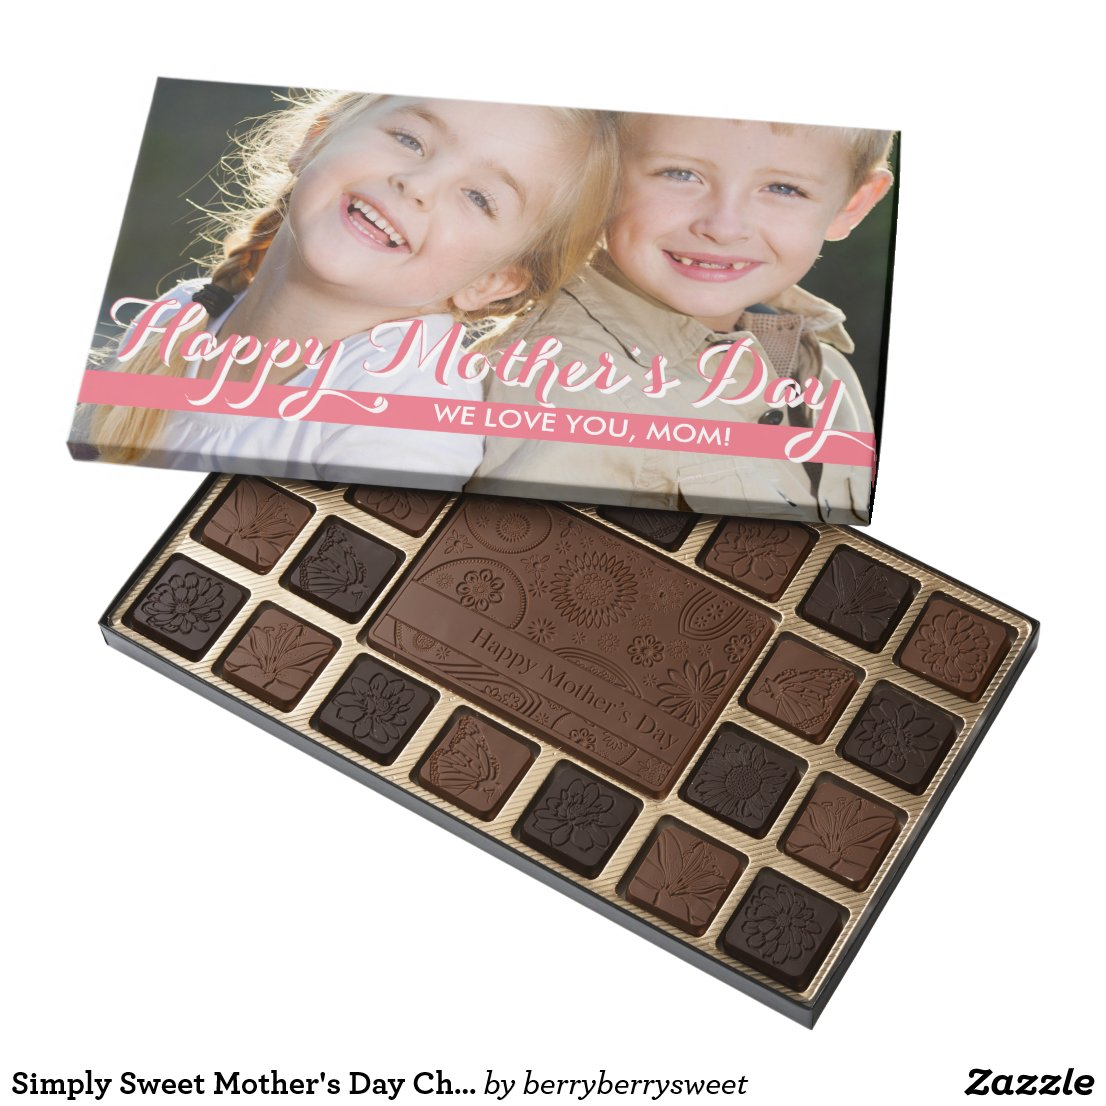 Simply Sweet Mother's Day Chocolate